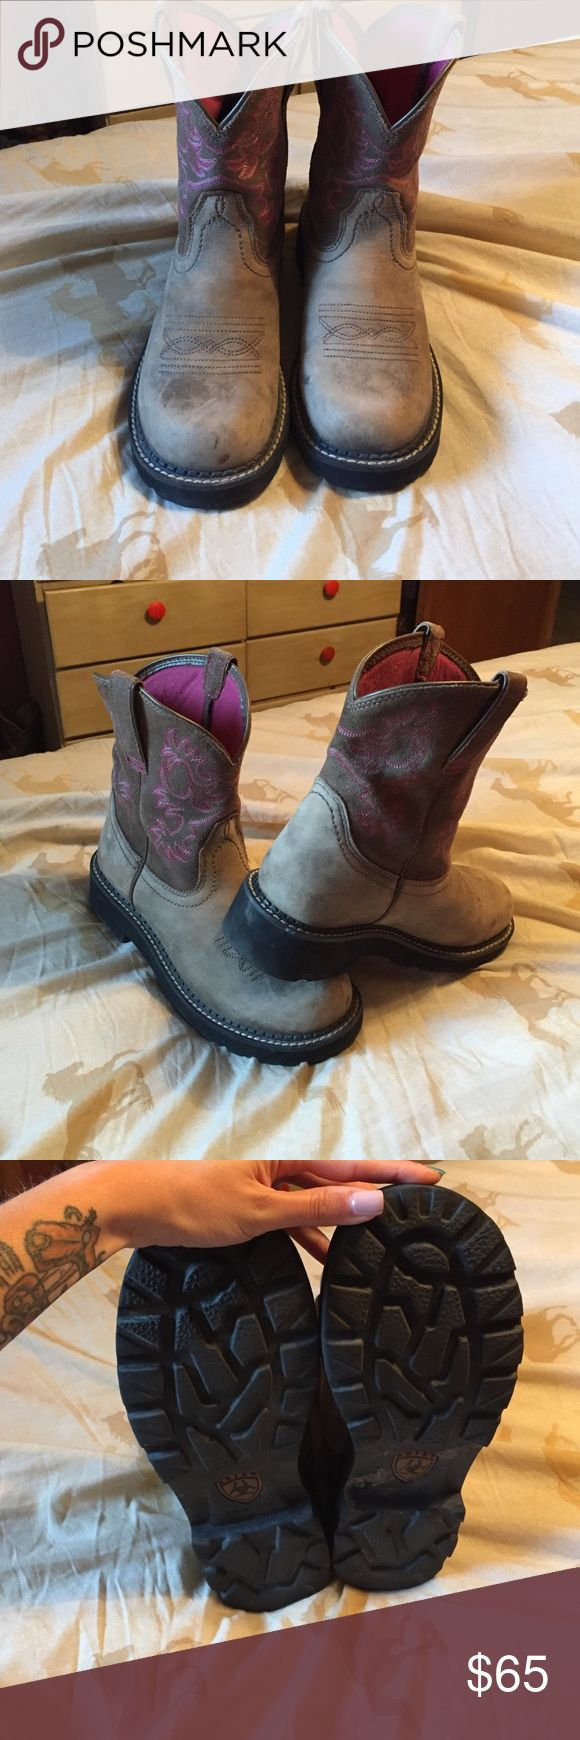 Ariat Fatbaby boots Worn fat baby Ariat boots in great condition! Ariat Shoes